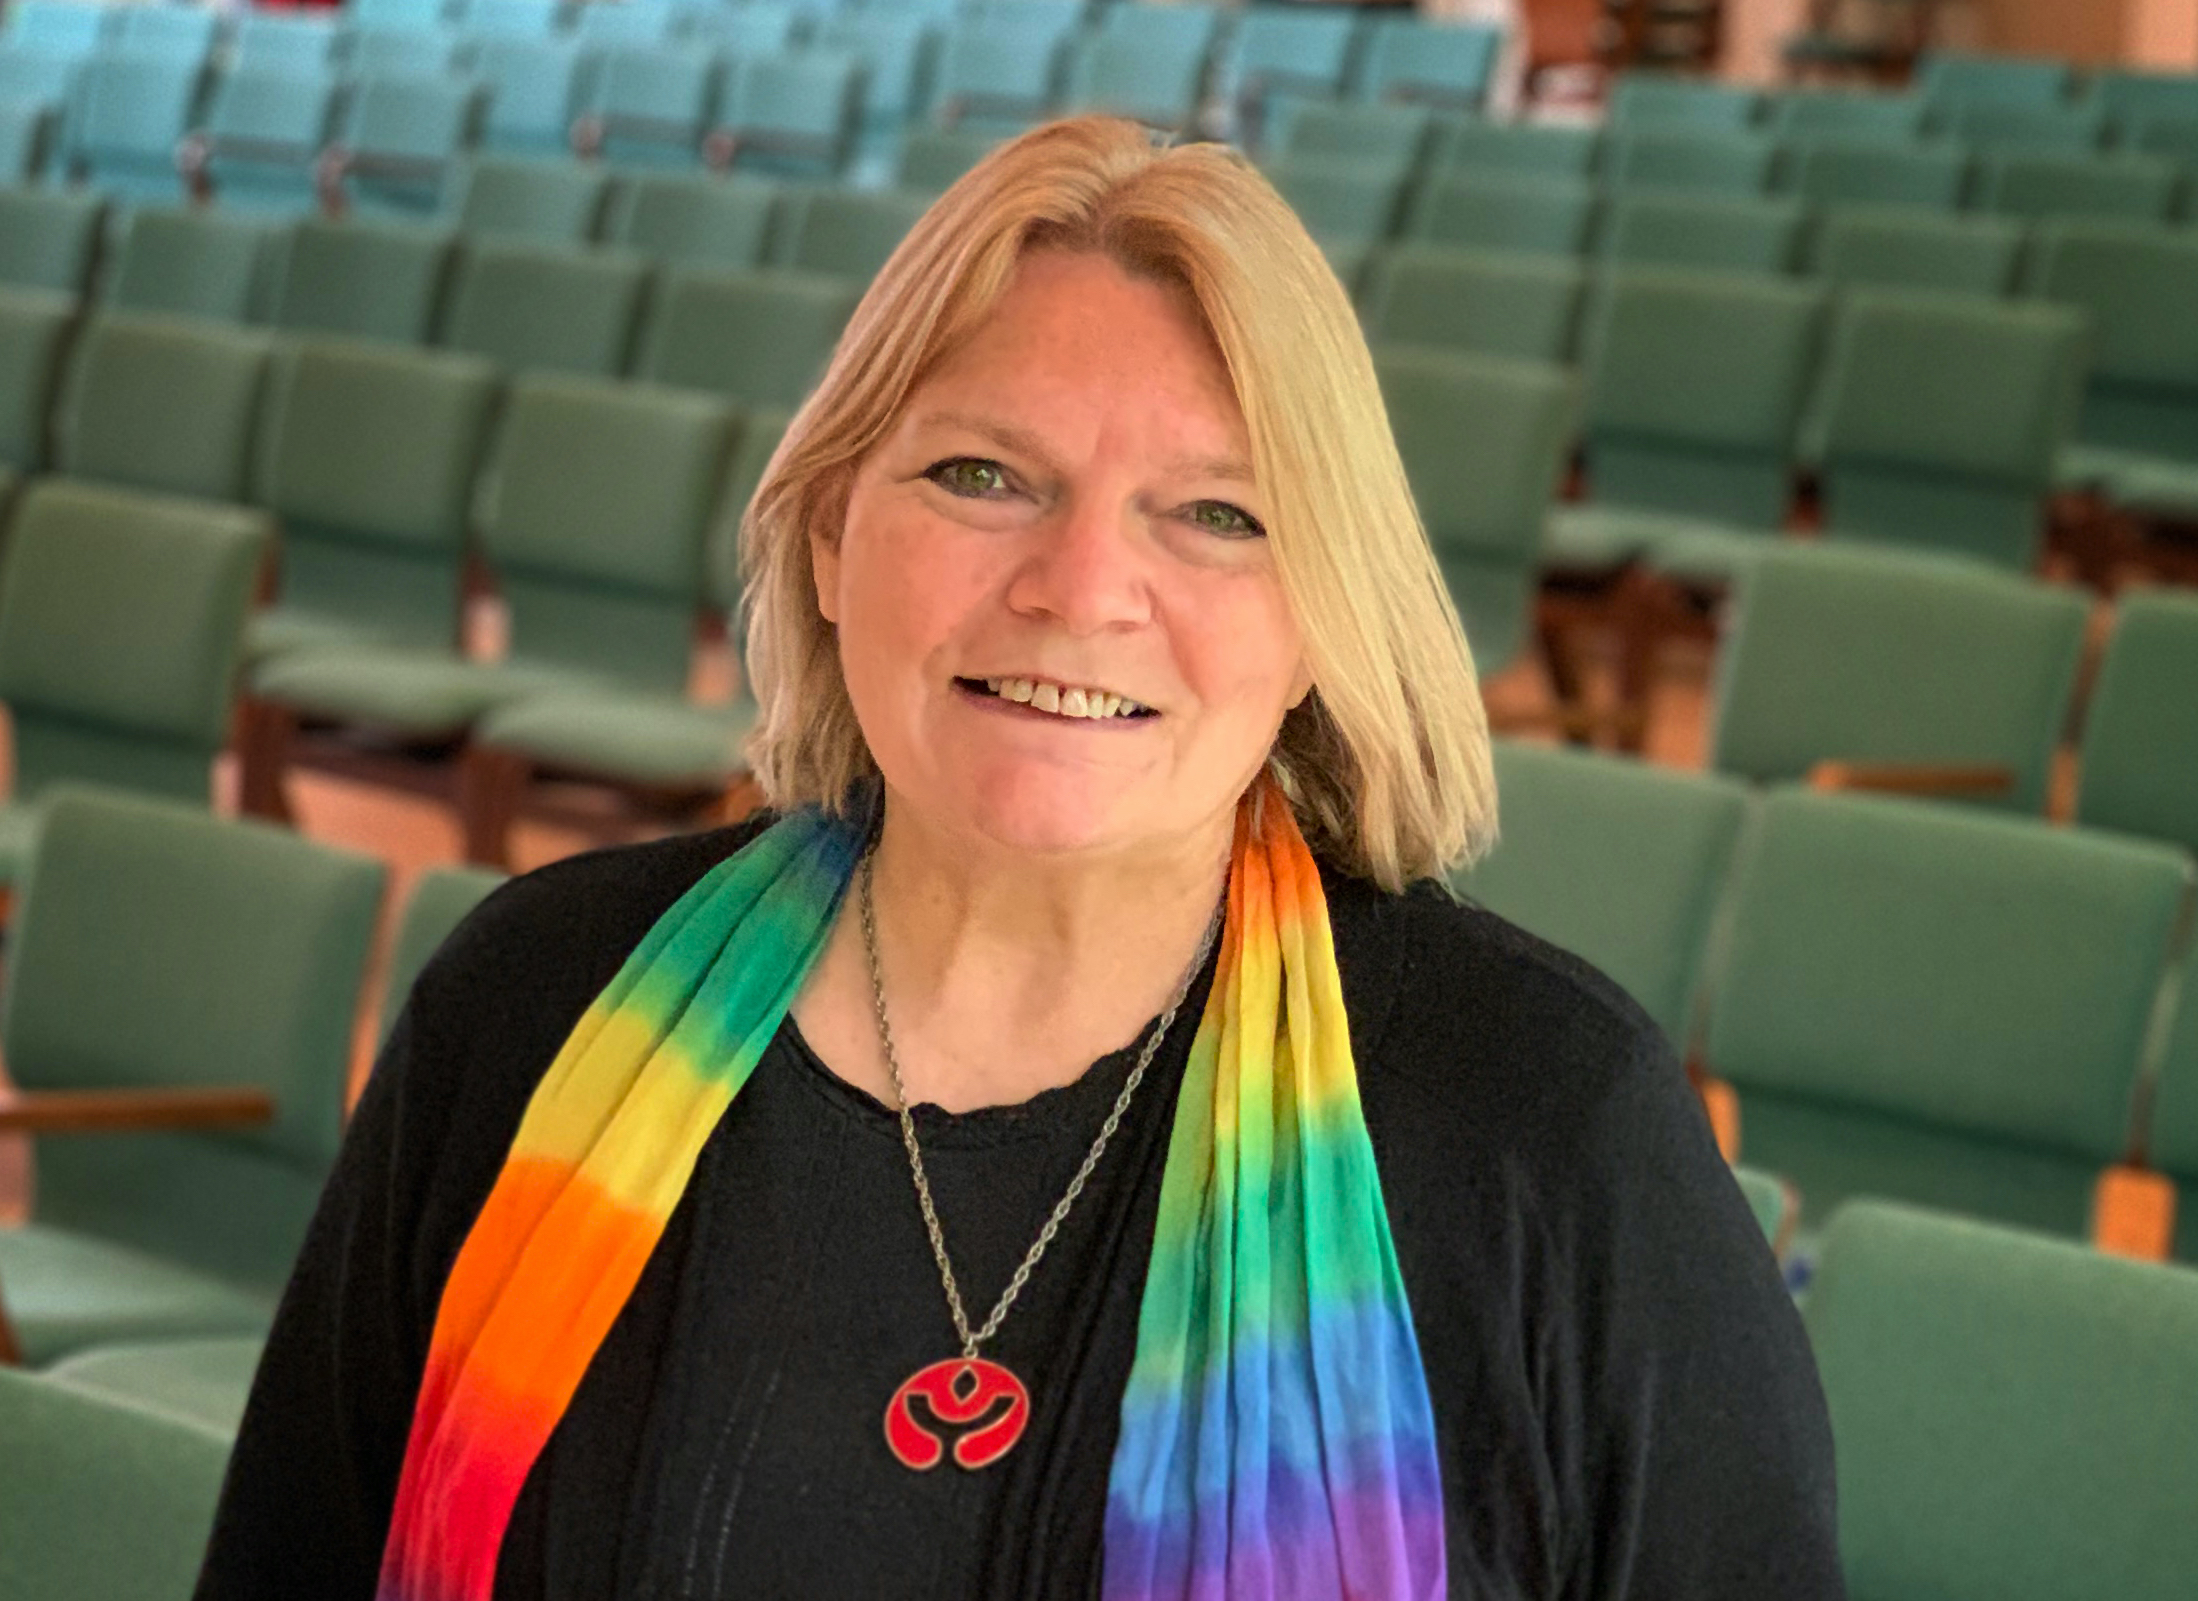 Wonderful News! We Welcome  The Reverend Dr. Linda Olson Peebles As Our Interim Minister